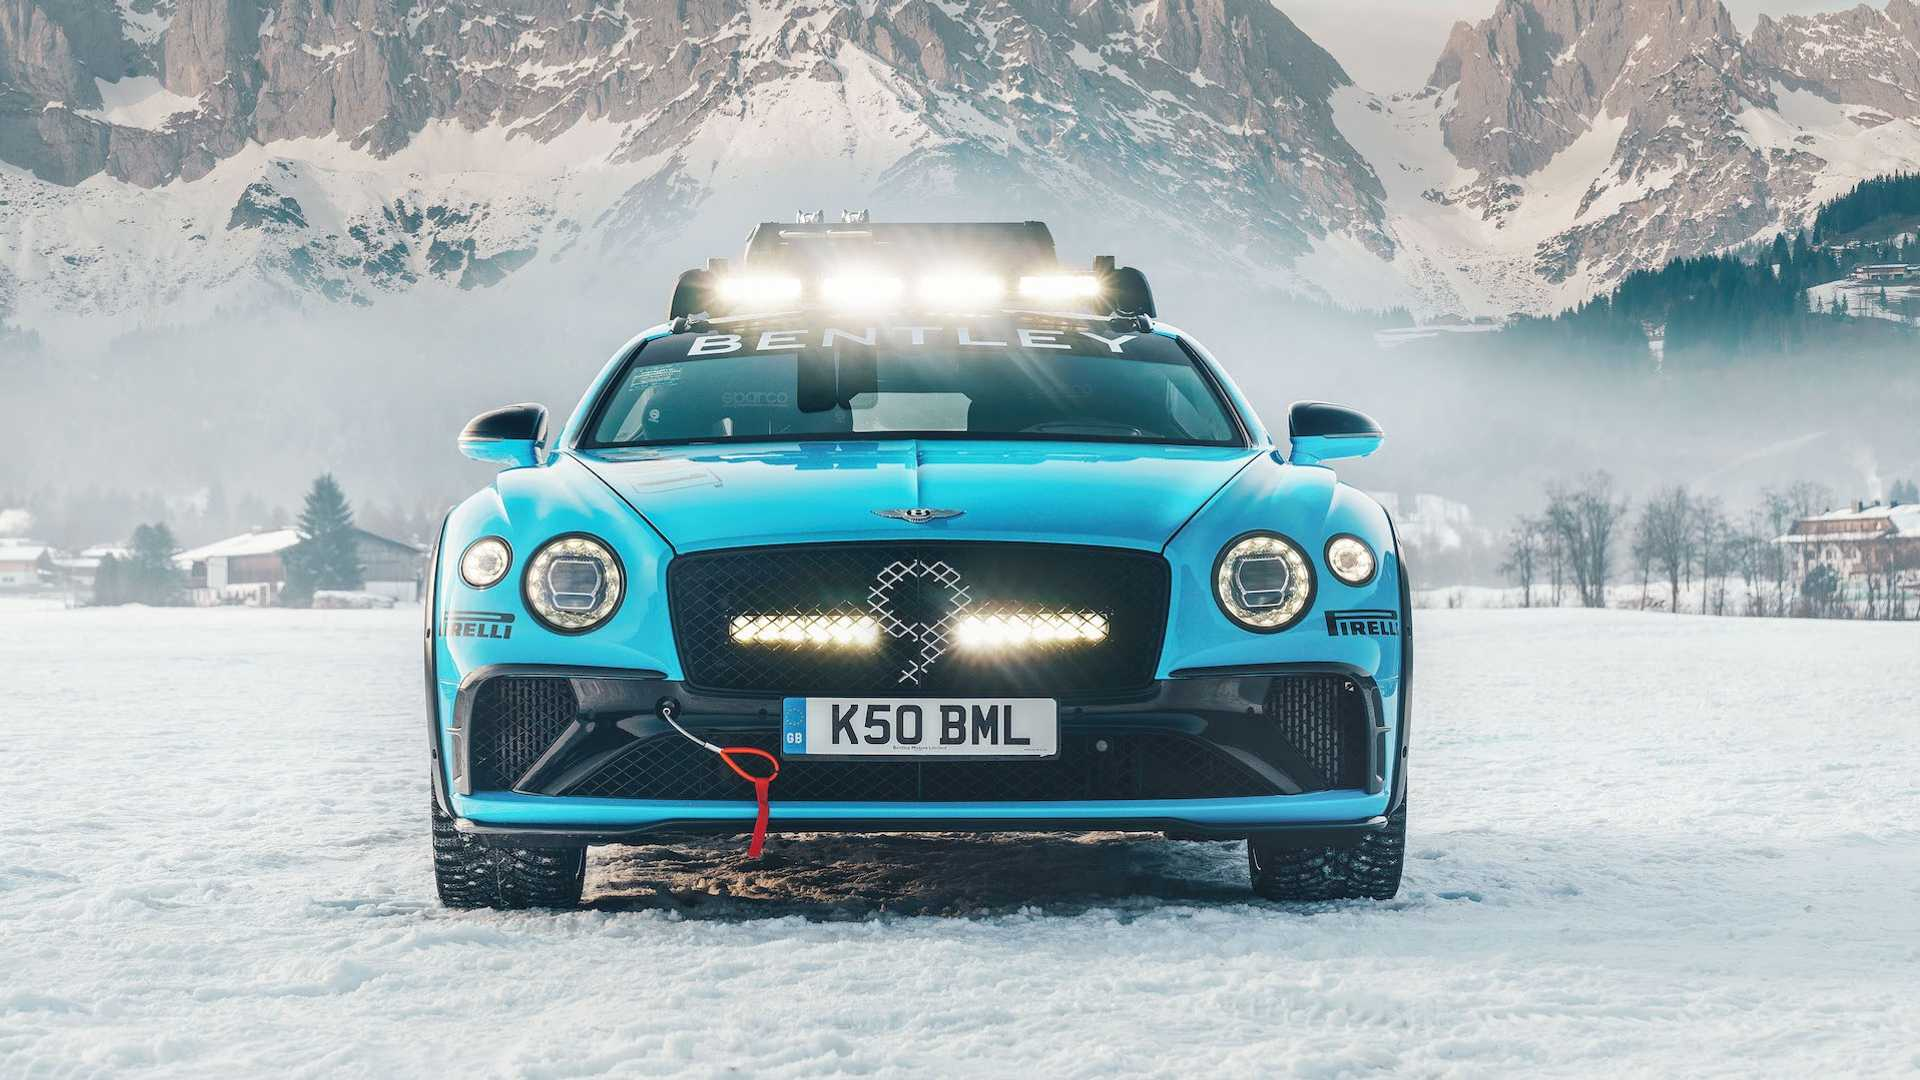 bentley continental gt curse ice race